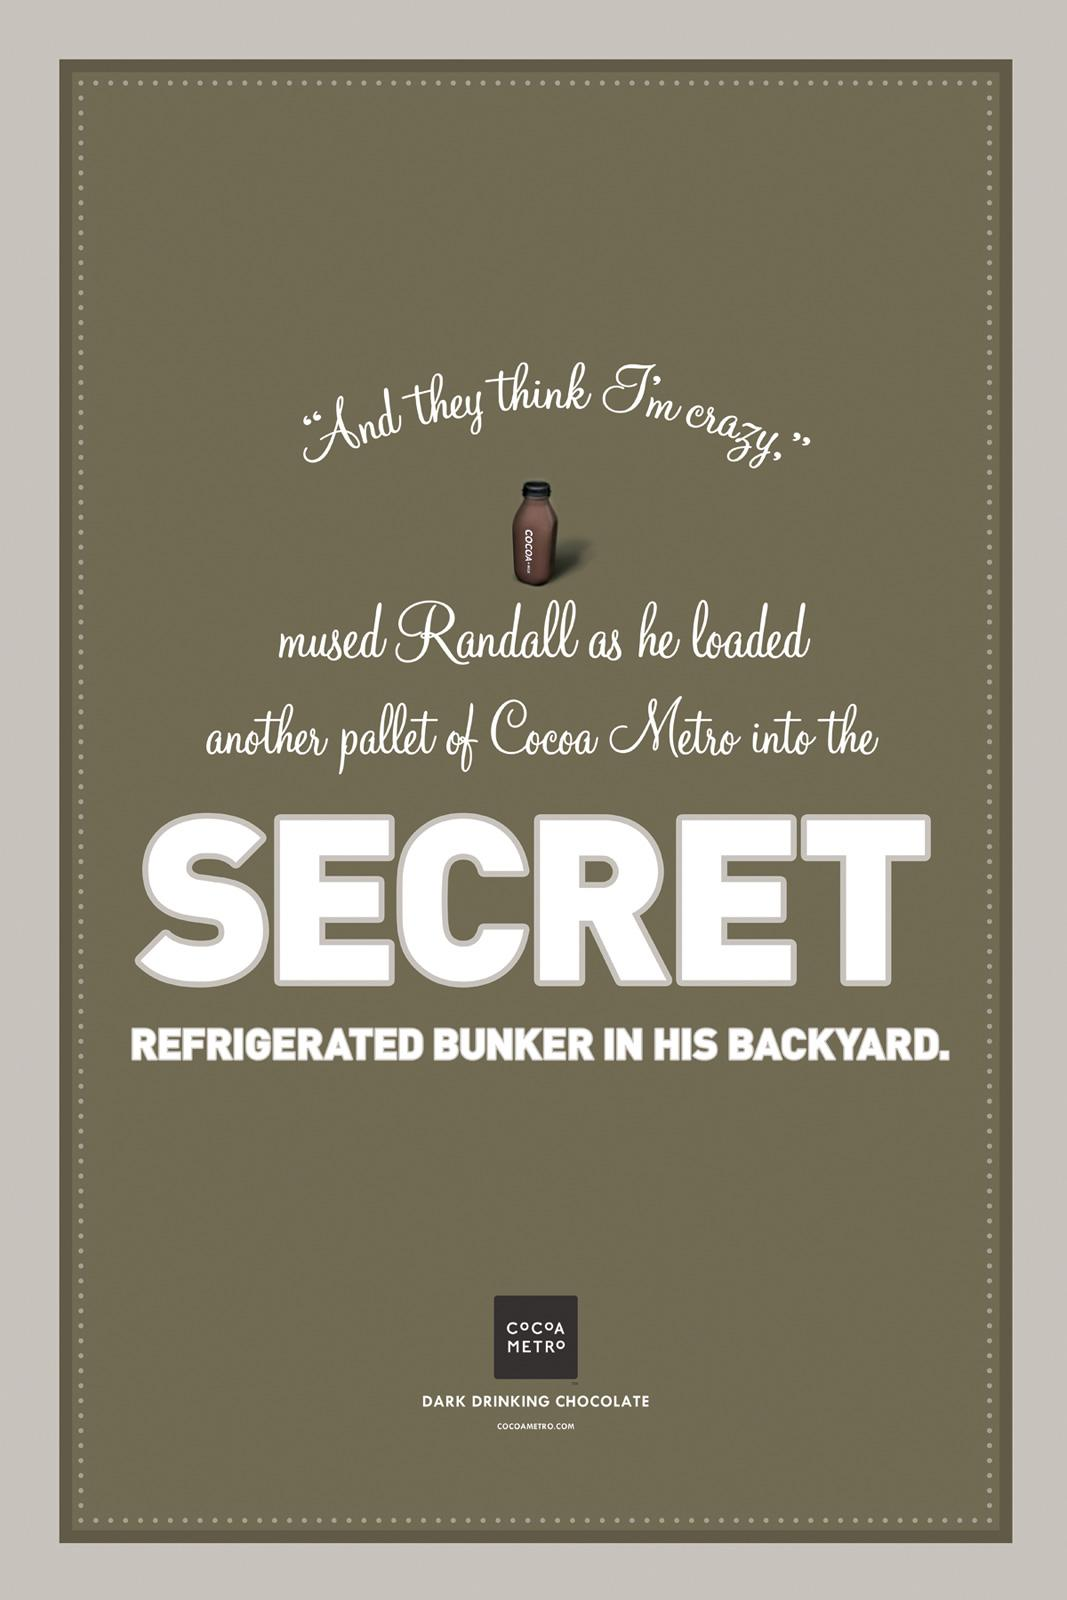 Cocoa Metro Outdoor Ad -  Story poster campaign, Secret